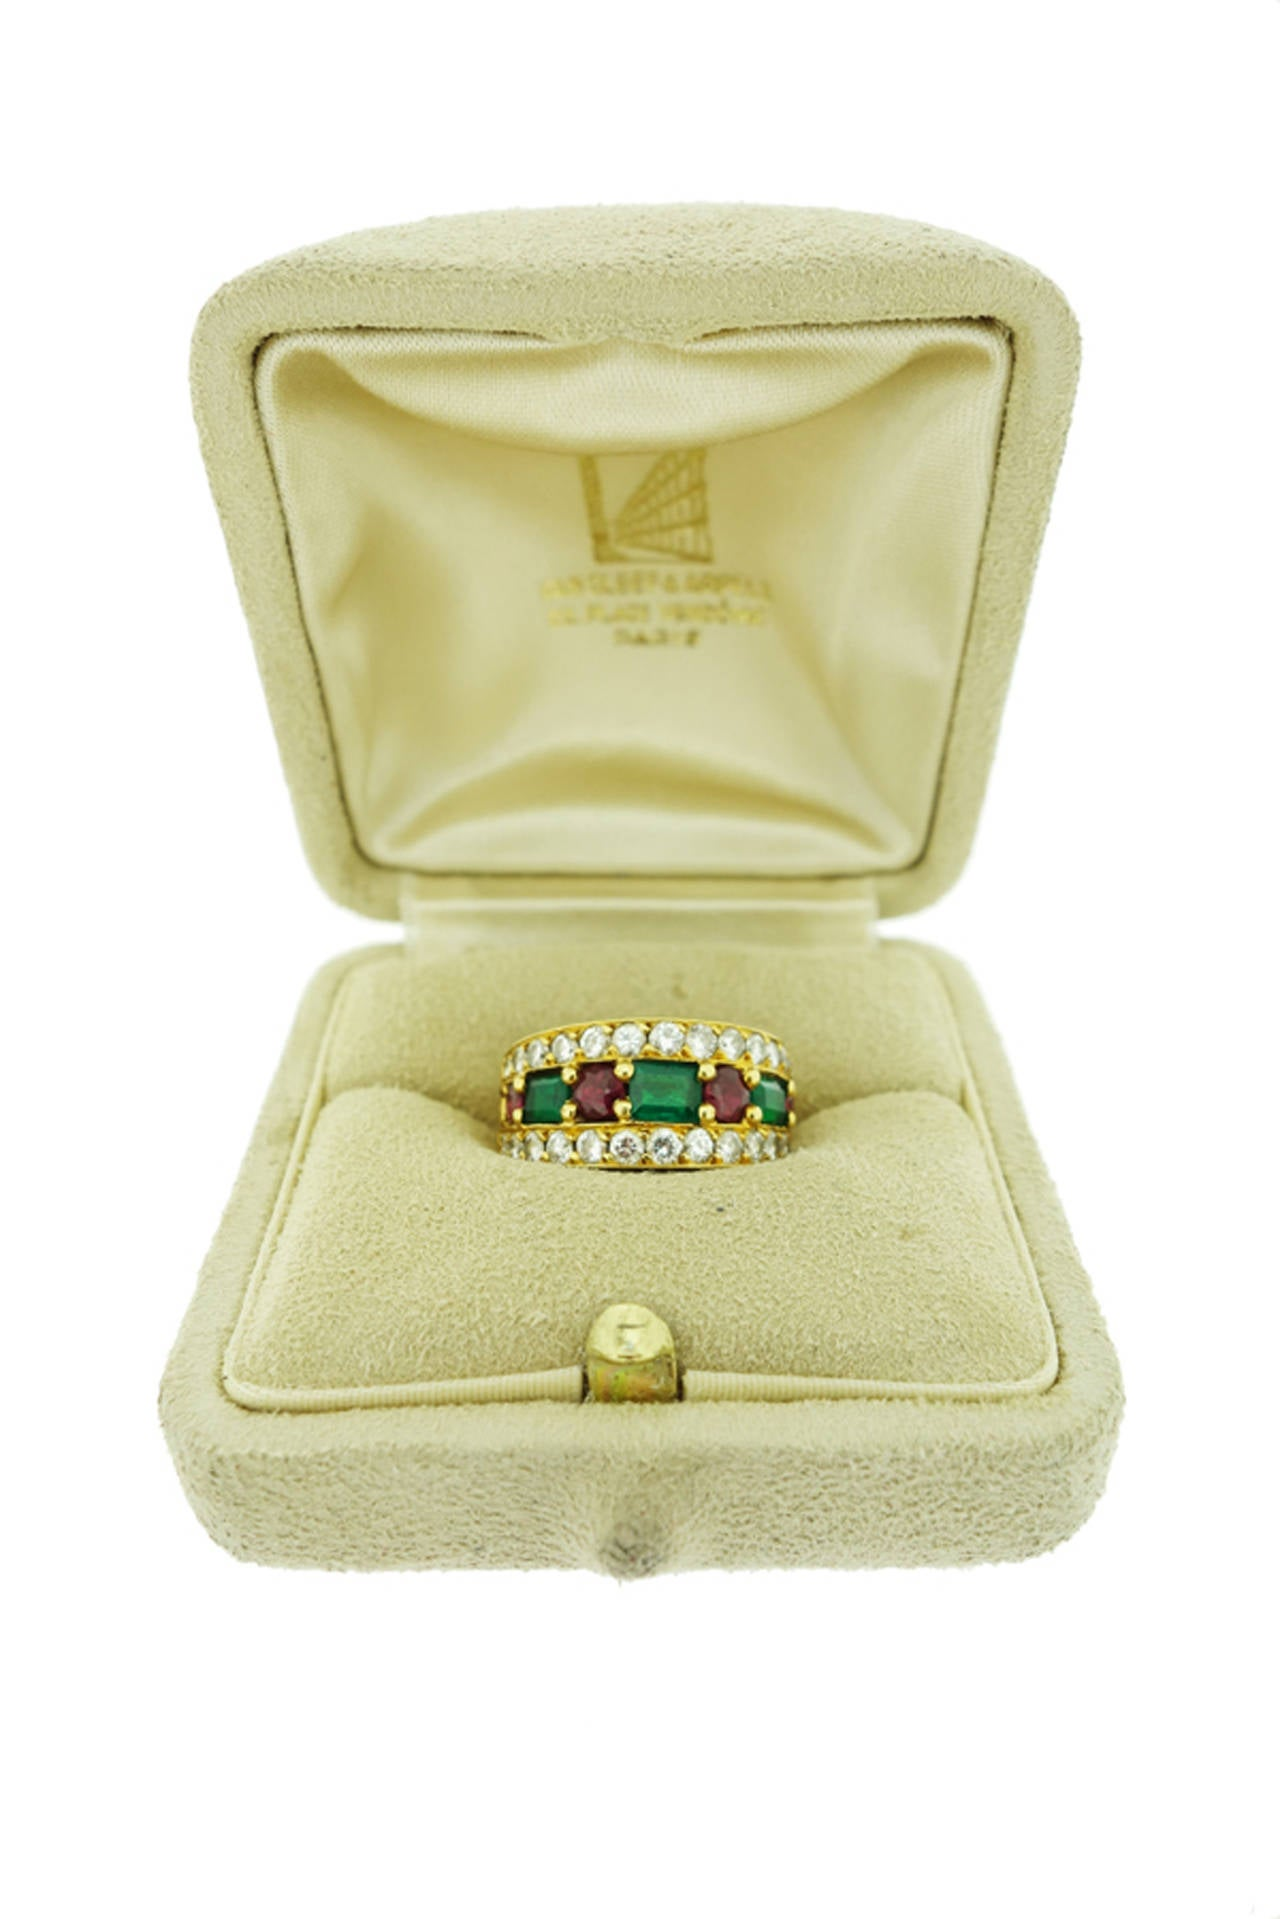 Classic Van Cleef & Arpels Vintage 18K Yellow Gold Emerald, Ruby and Diamond Ring. Circa 1970's.  The tapering design features natural Emeralds and Rubies alternating in the center, framed by two rows of diamonds. 